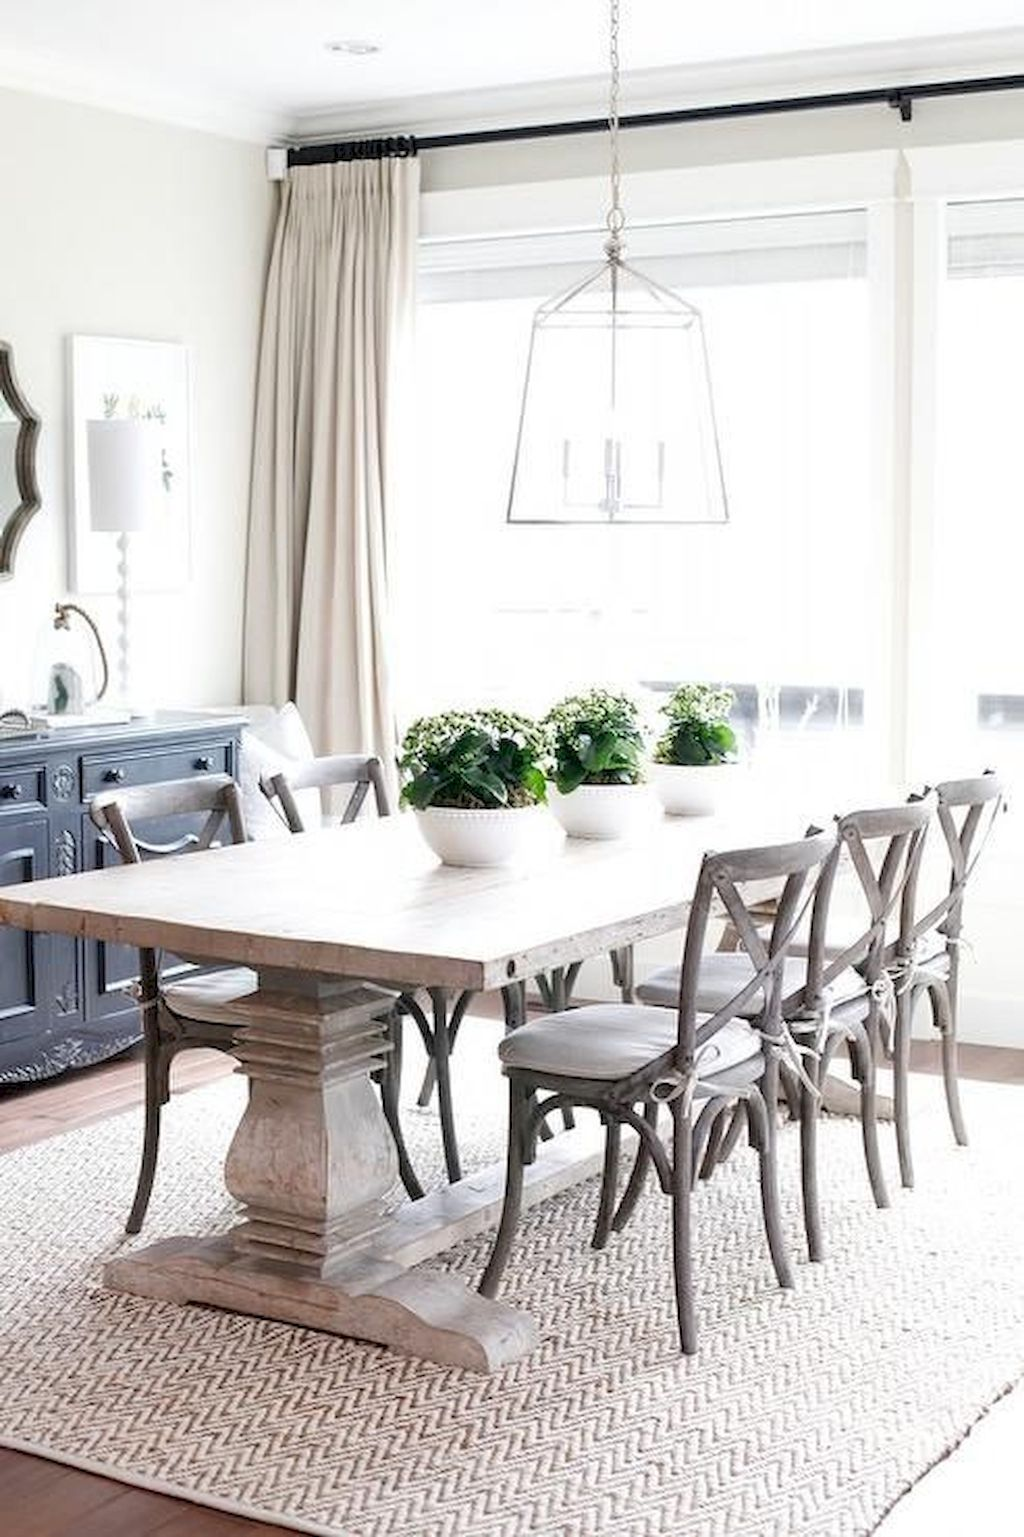 70 Dining Room Table Centerpieces Ideas, White Centerpieces For Dining Room Table